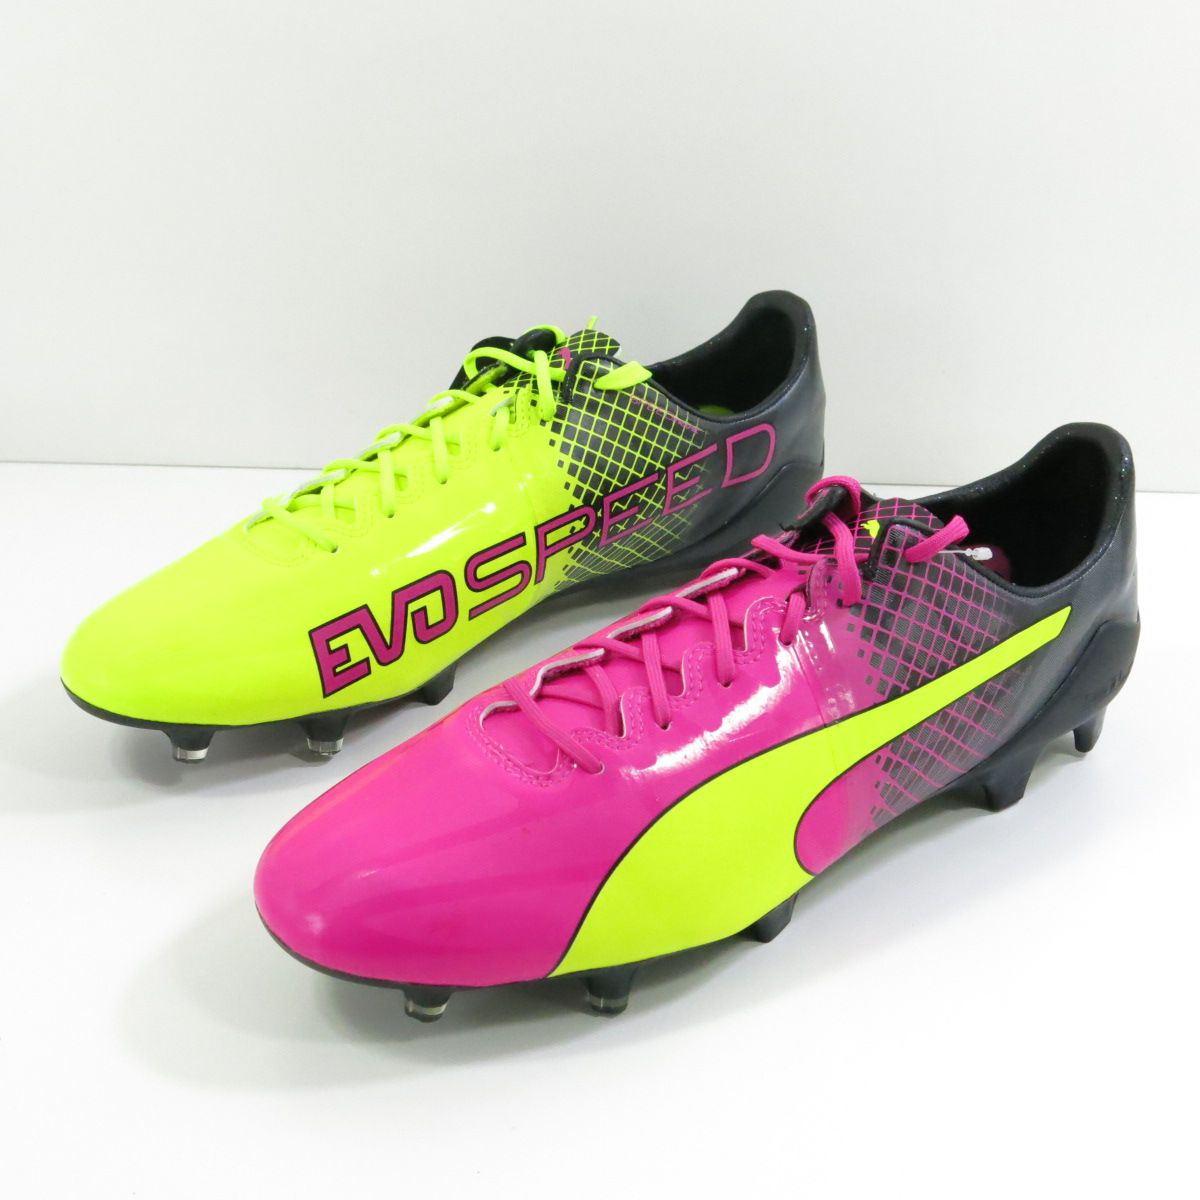 Chuteira Puma Evospeed 1.5 Fg Tricks Elite